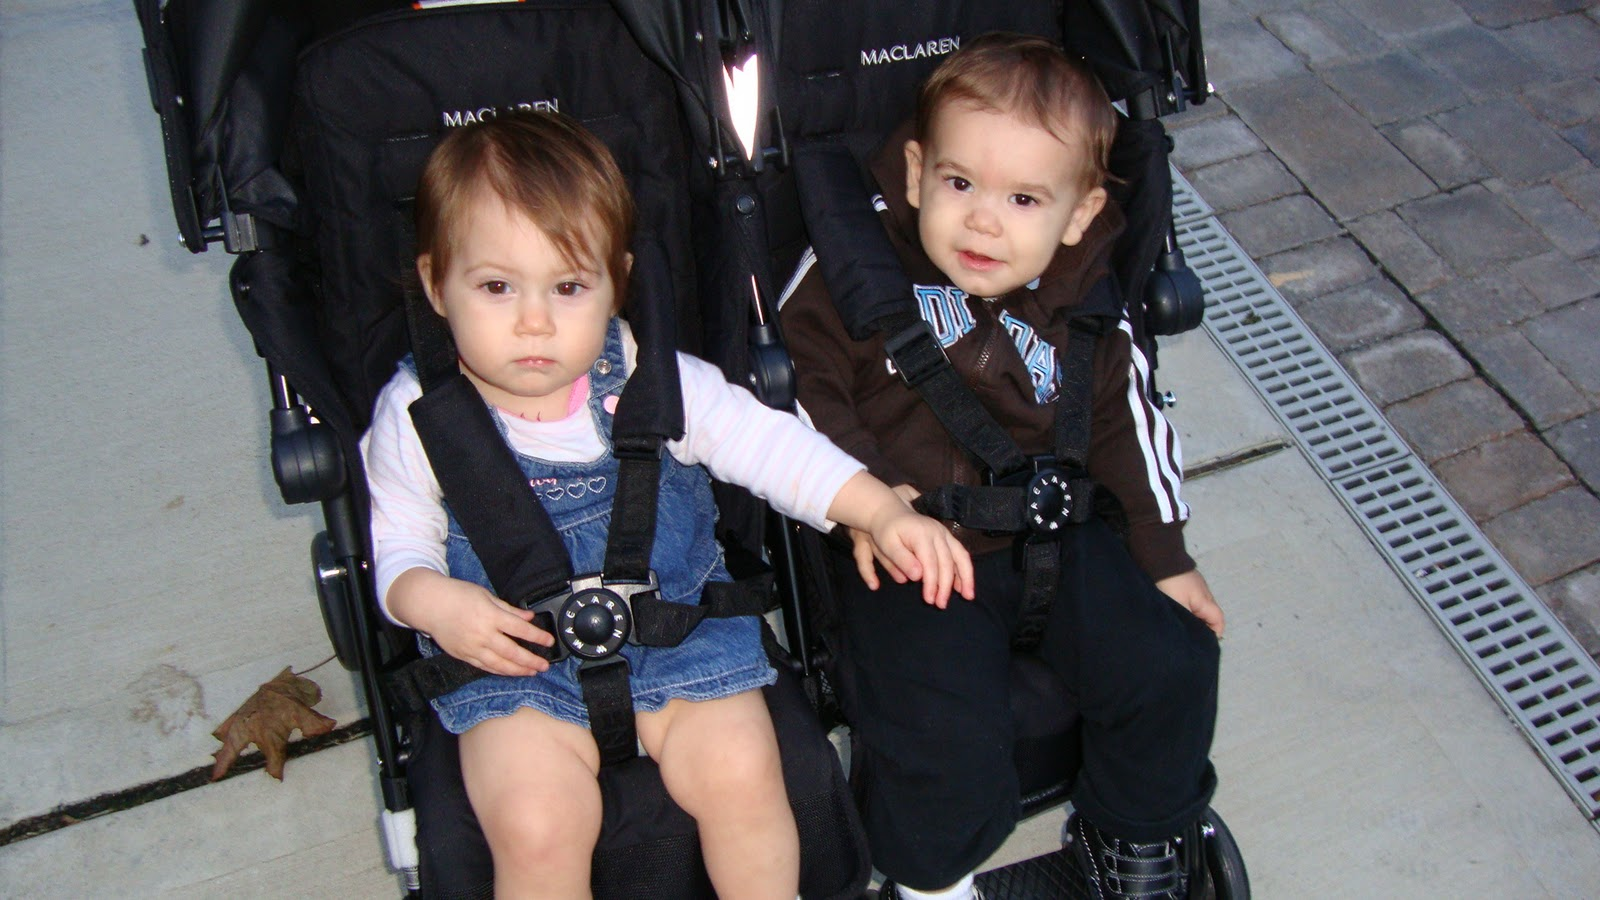 The Maclaren Twin Techno Double Stroller 187 Penelopes Oasis